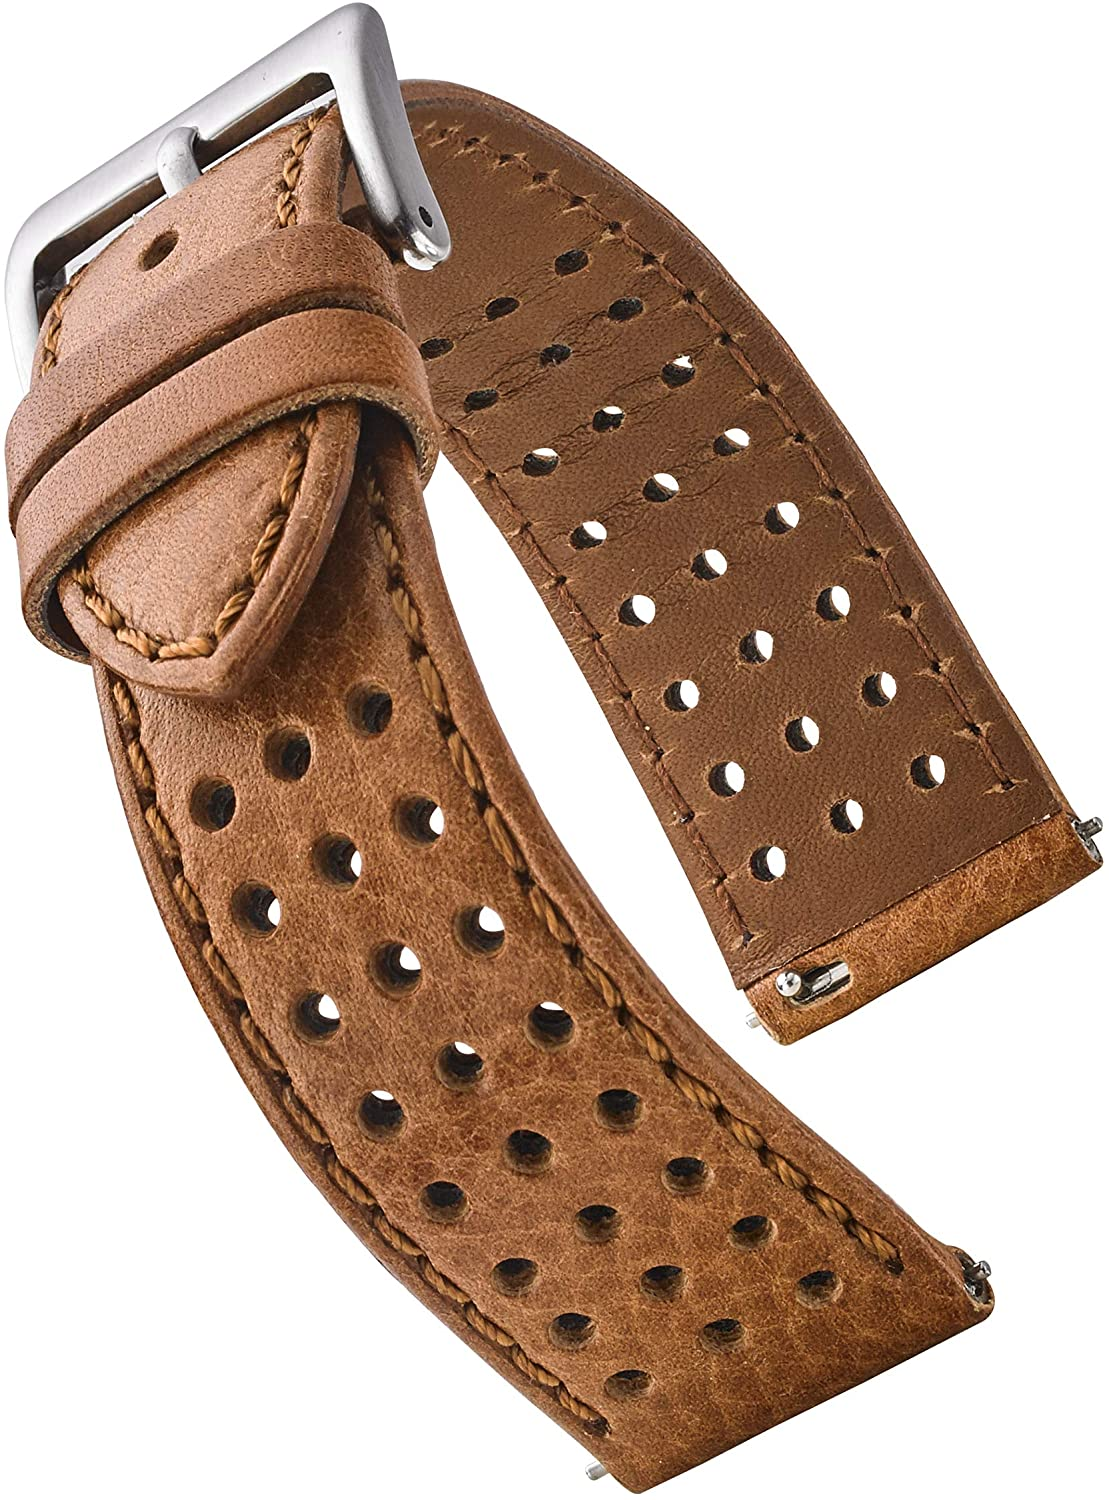 Alpine Soft and Smooth Genuine Perforated Leather Watch Band - Black, Brown, Tan - 18 mm, 20 mm, 22 mm